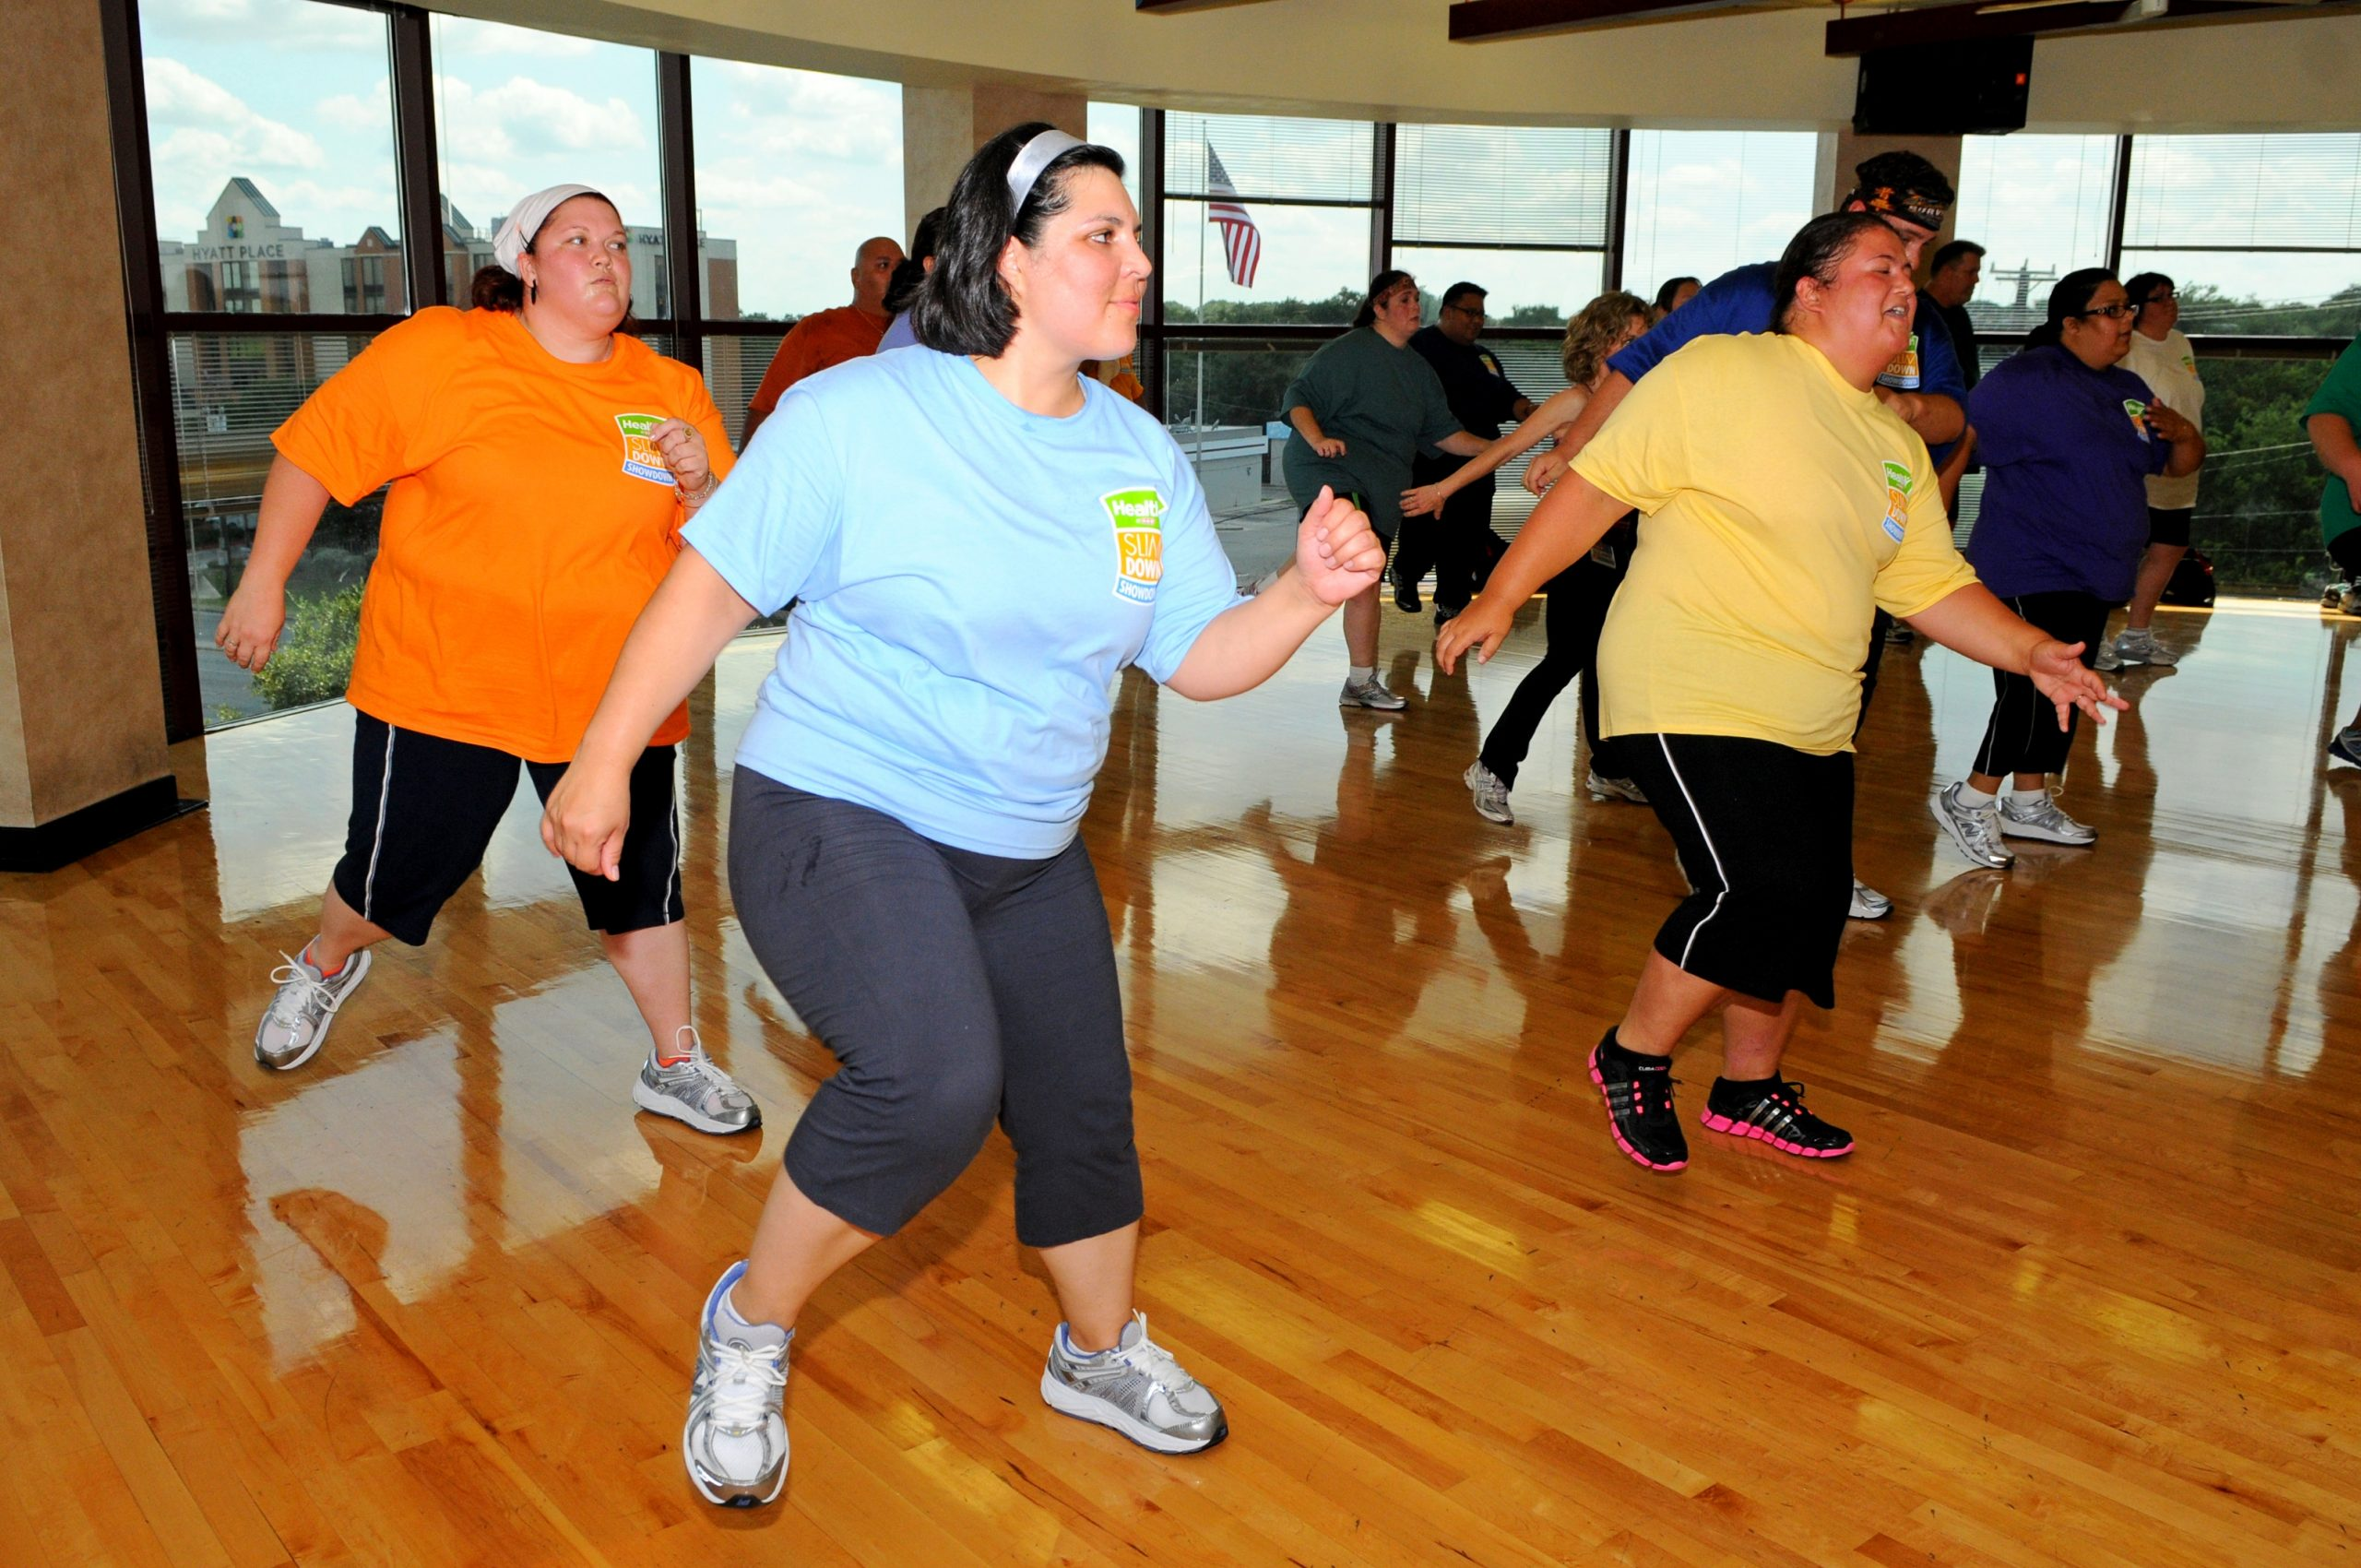 Portland contestant Nadia Rivas of Portland gets down at a Zumba class at Gold's Gym.